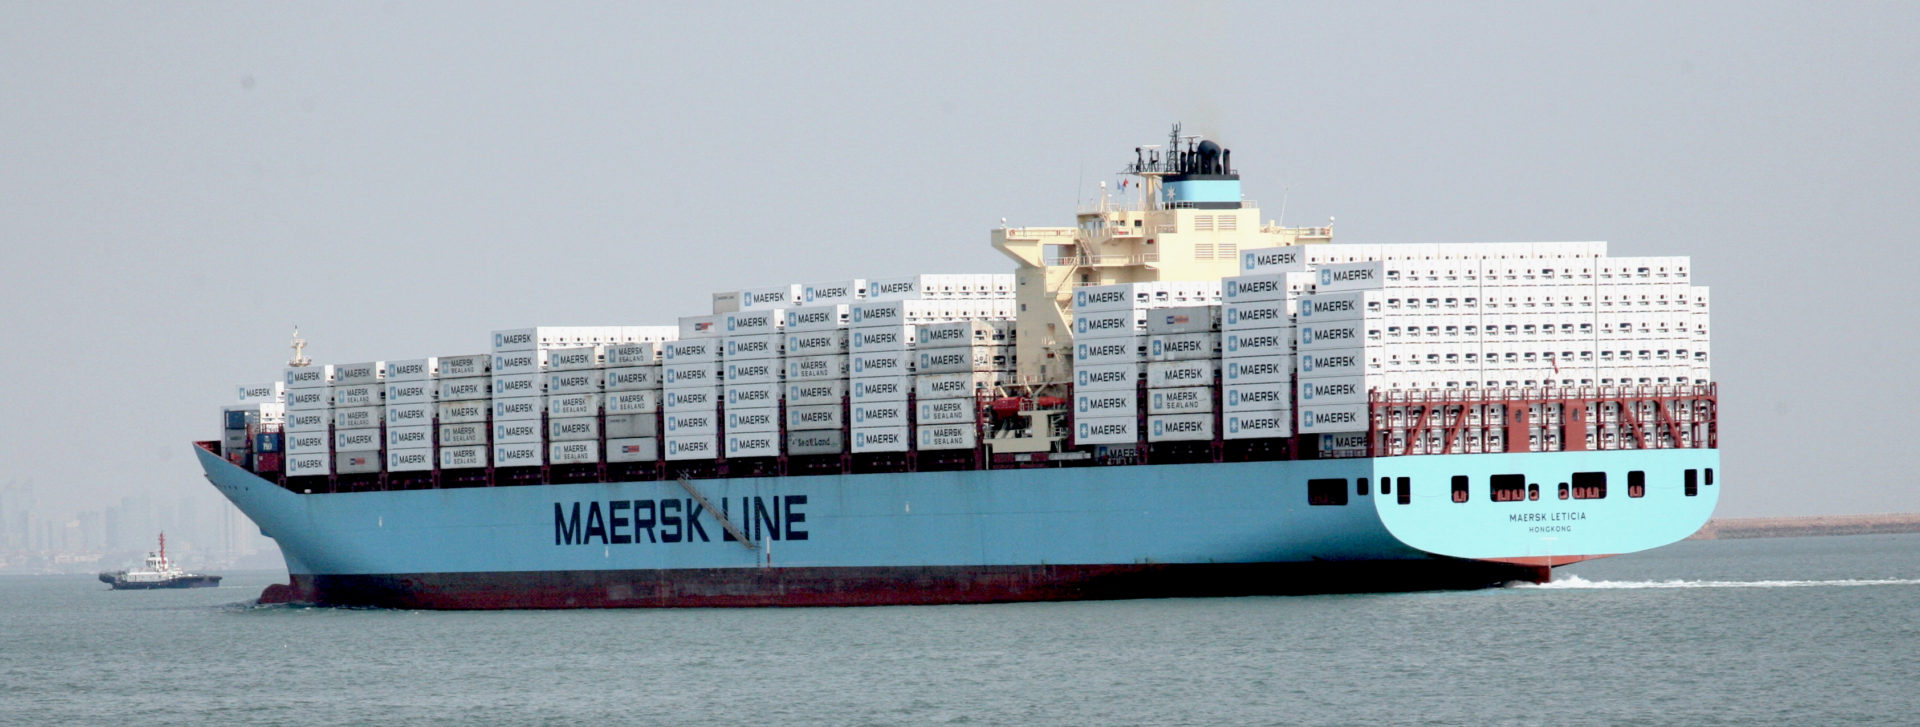 Maersk Expects Carrier Competition to Shrink to 3 Global